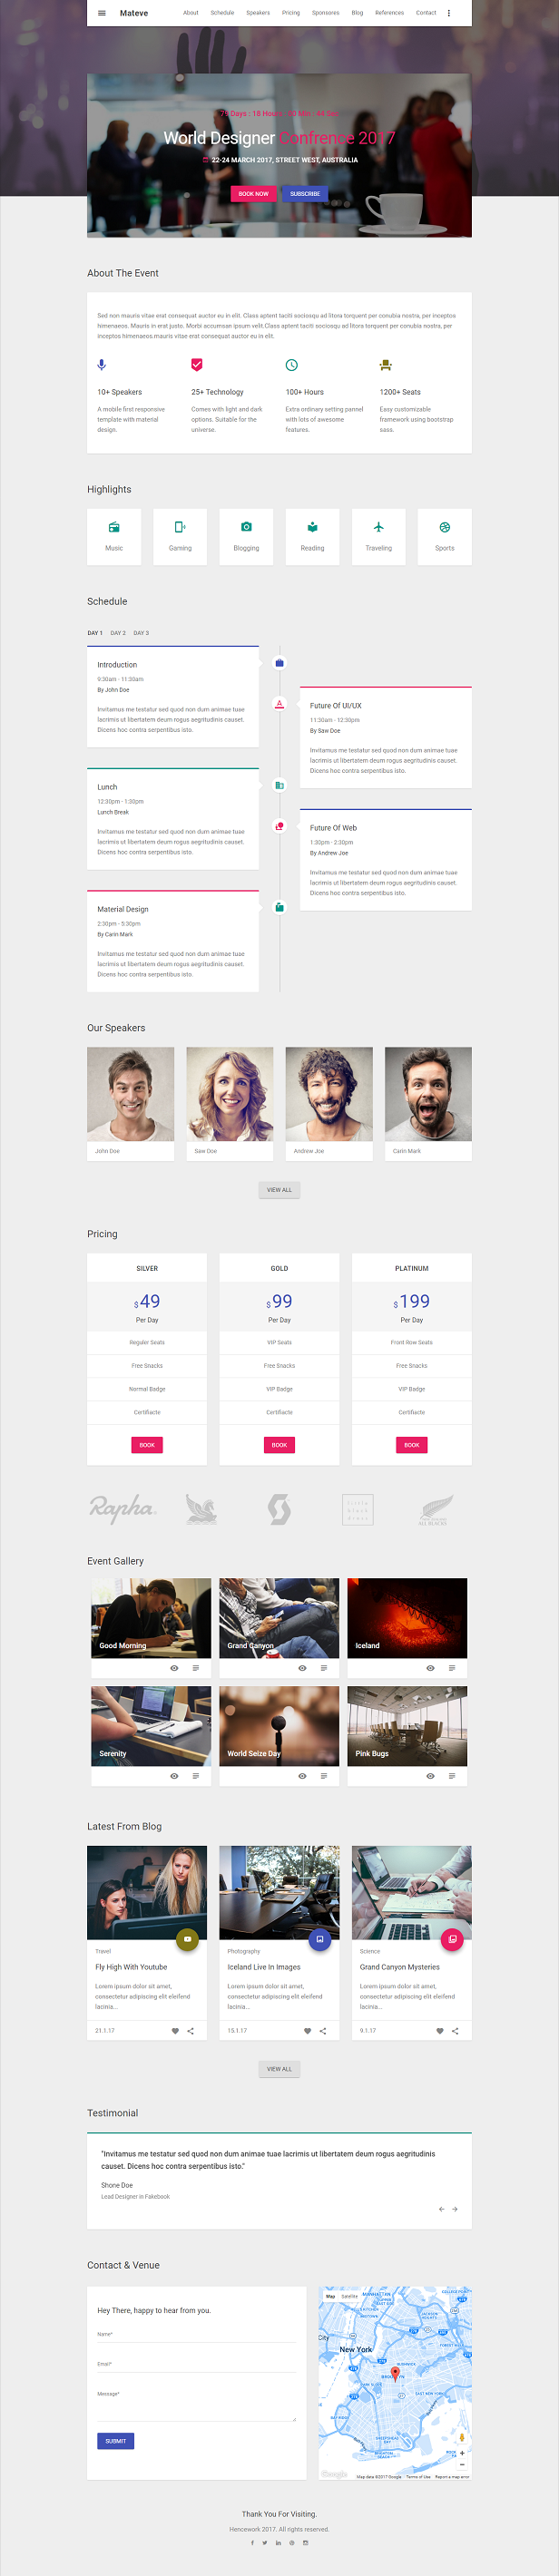 Mateve - Material Design Event / Conference / Concert HTML Template - 2